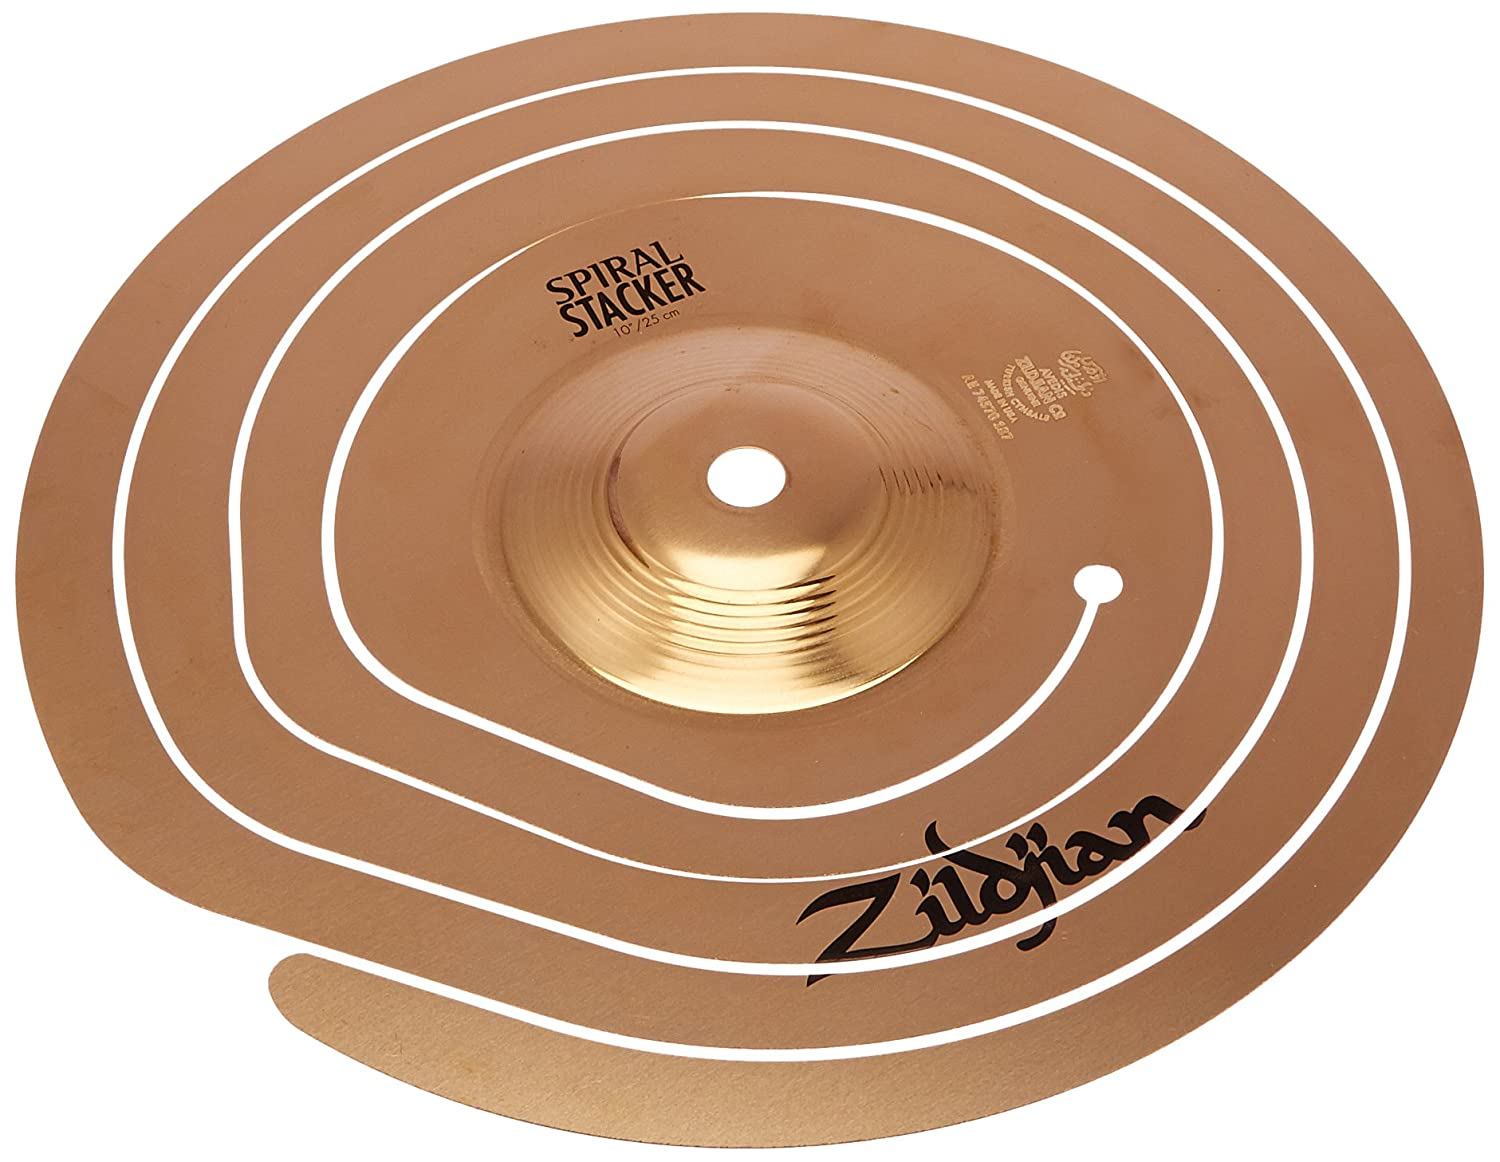 'Crash 10 FX Spiral Stacker ZILDJIAN FXSPL10